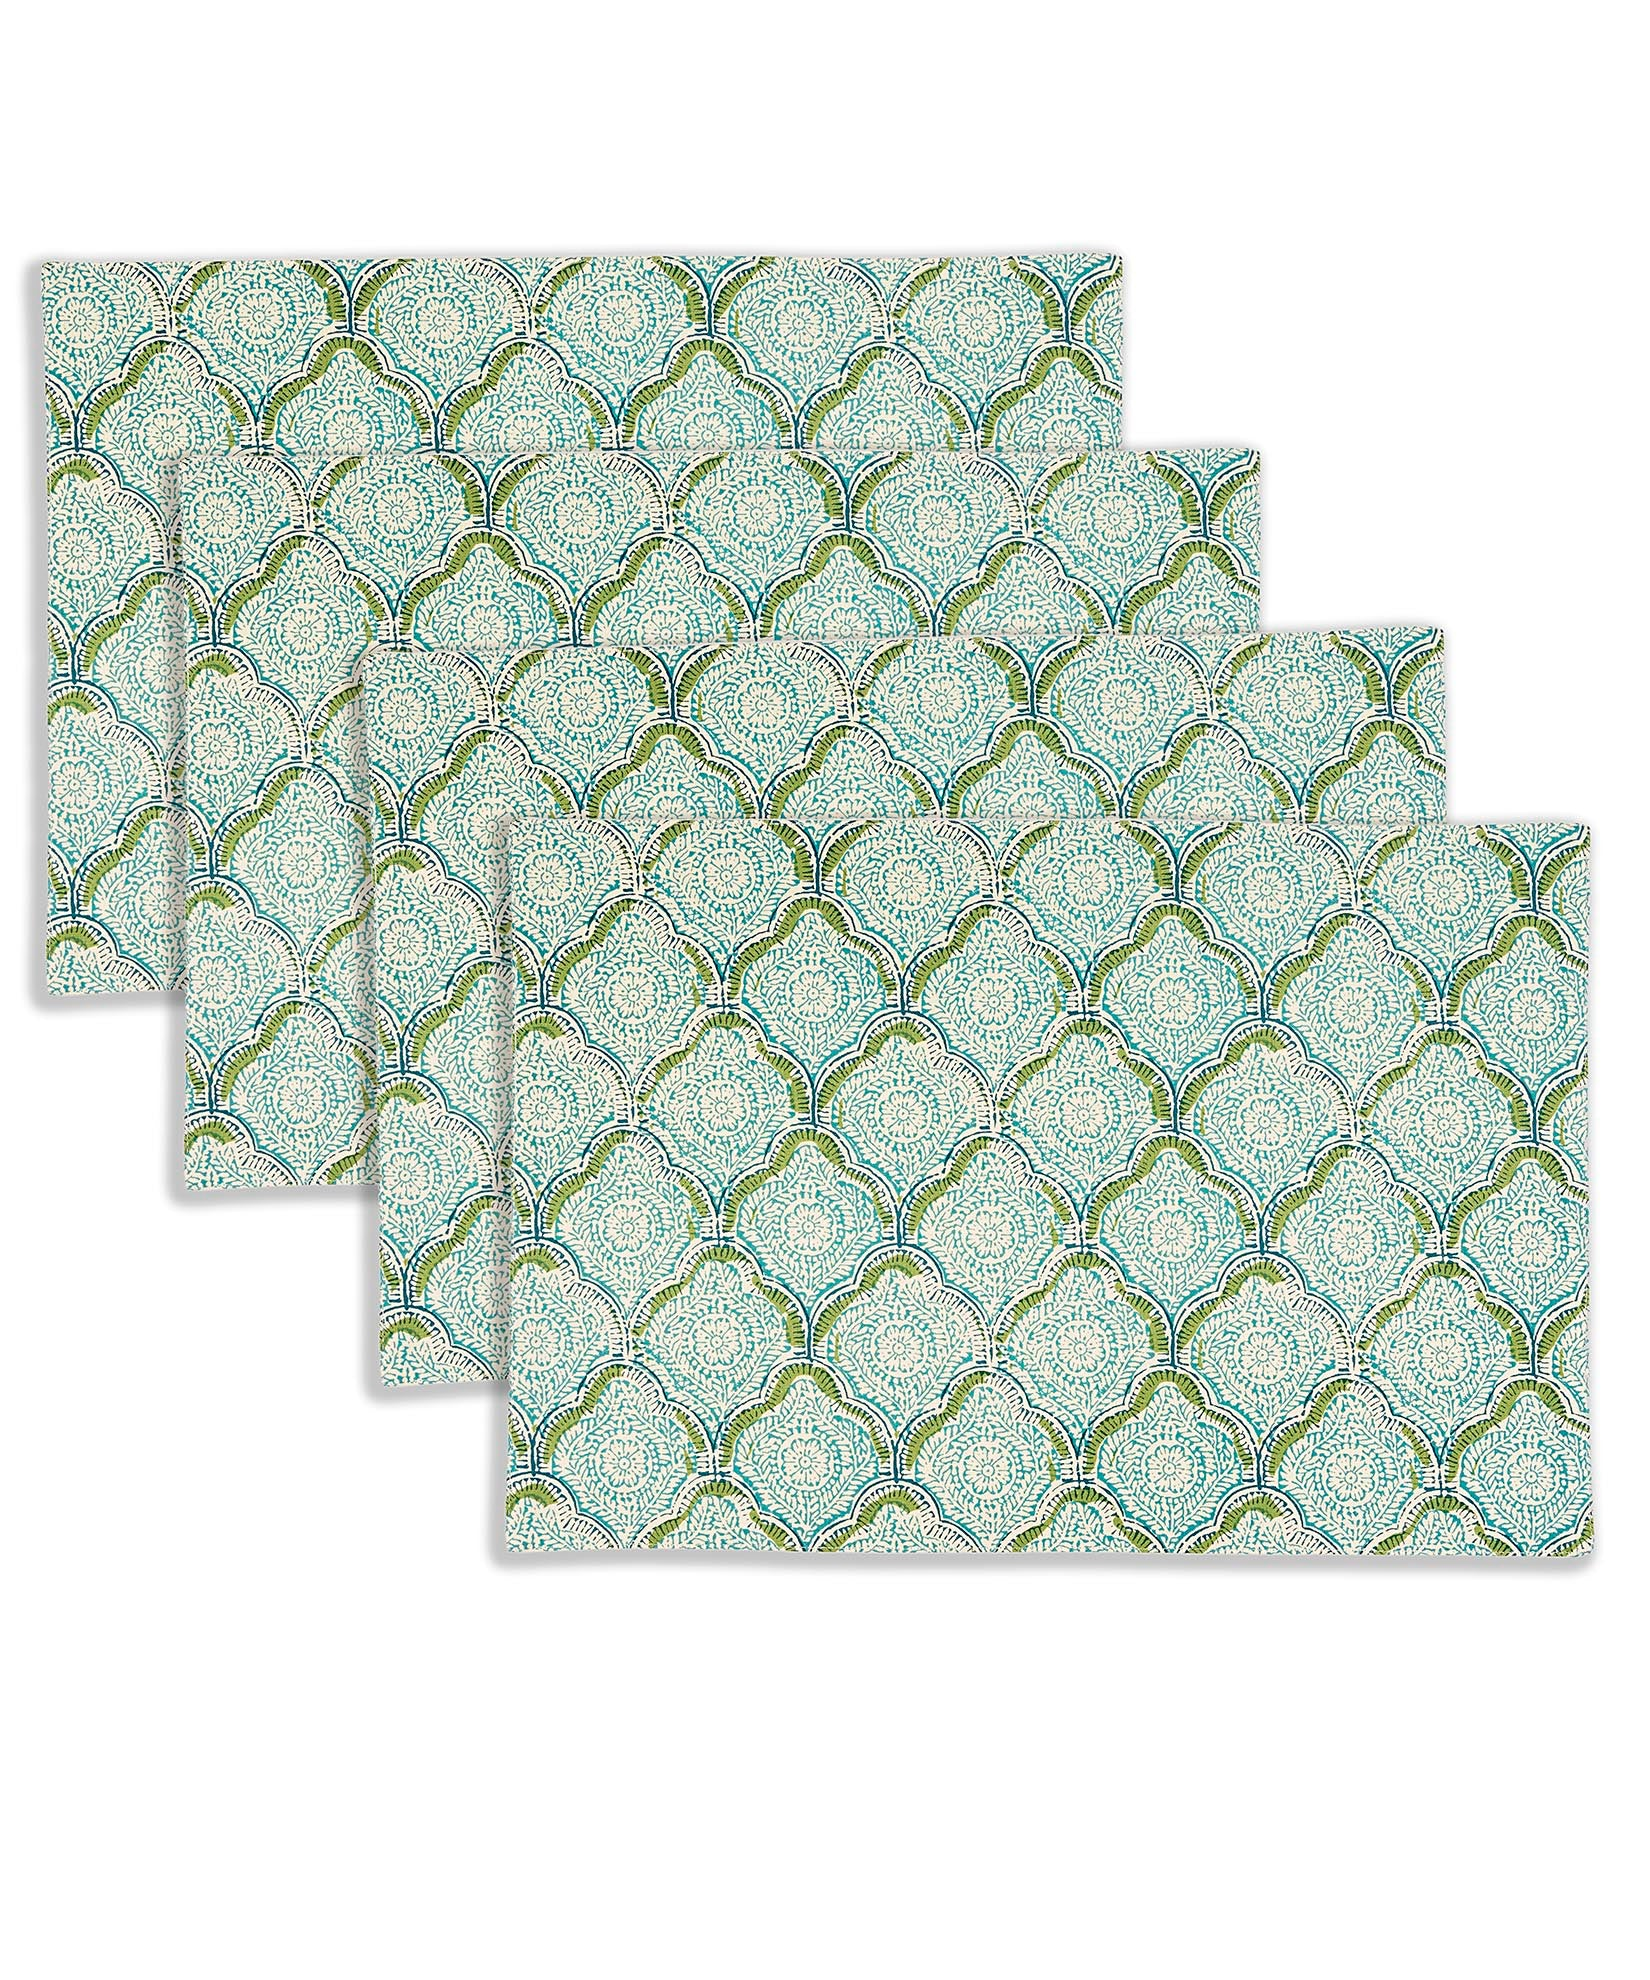 Grass - Indian Stamp Placemat (4 Pack)